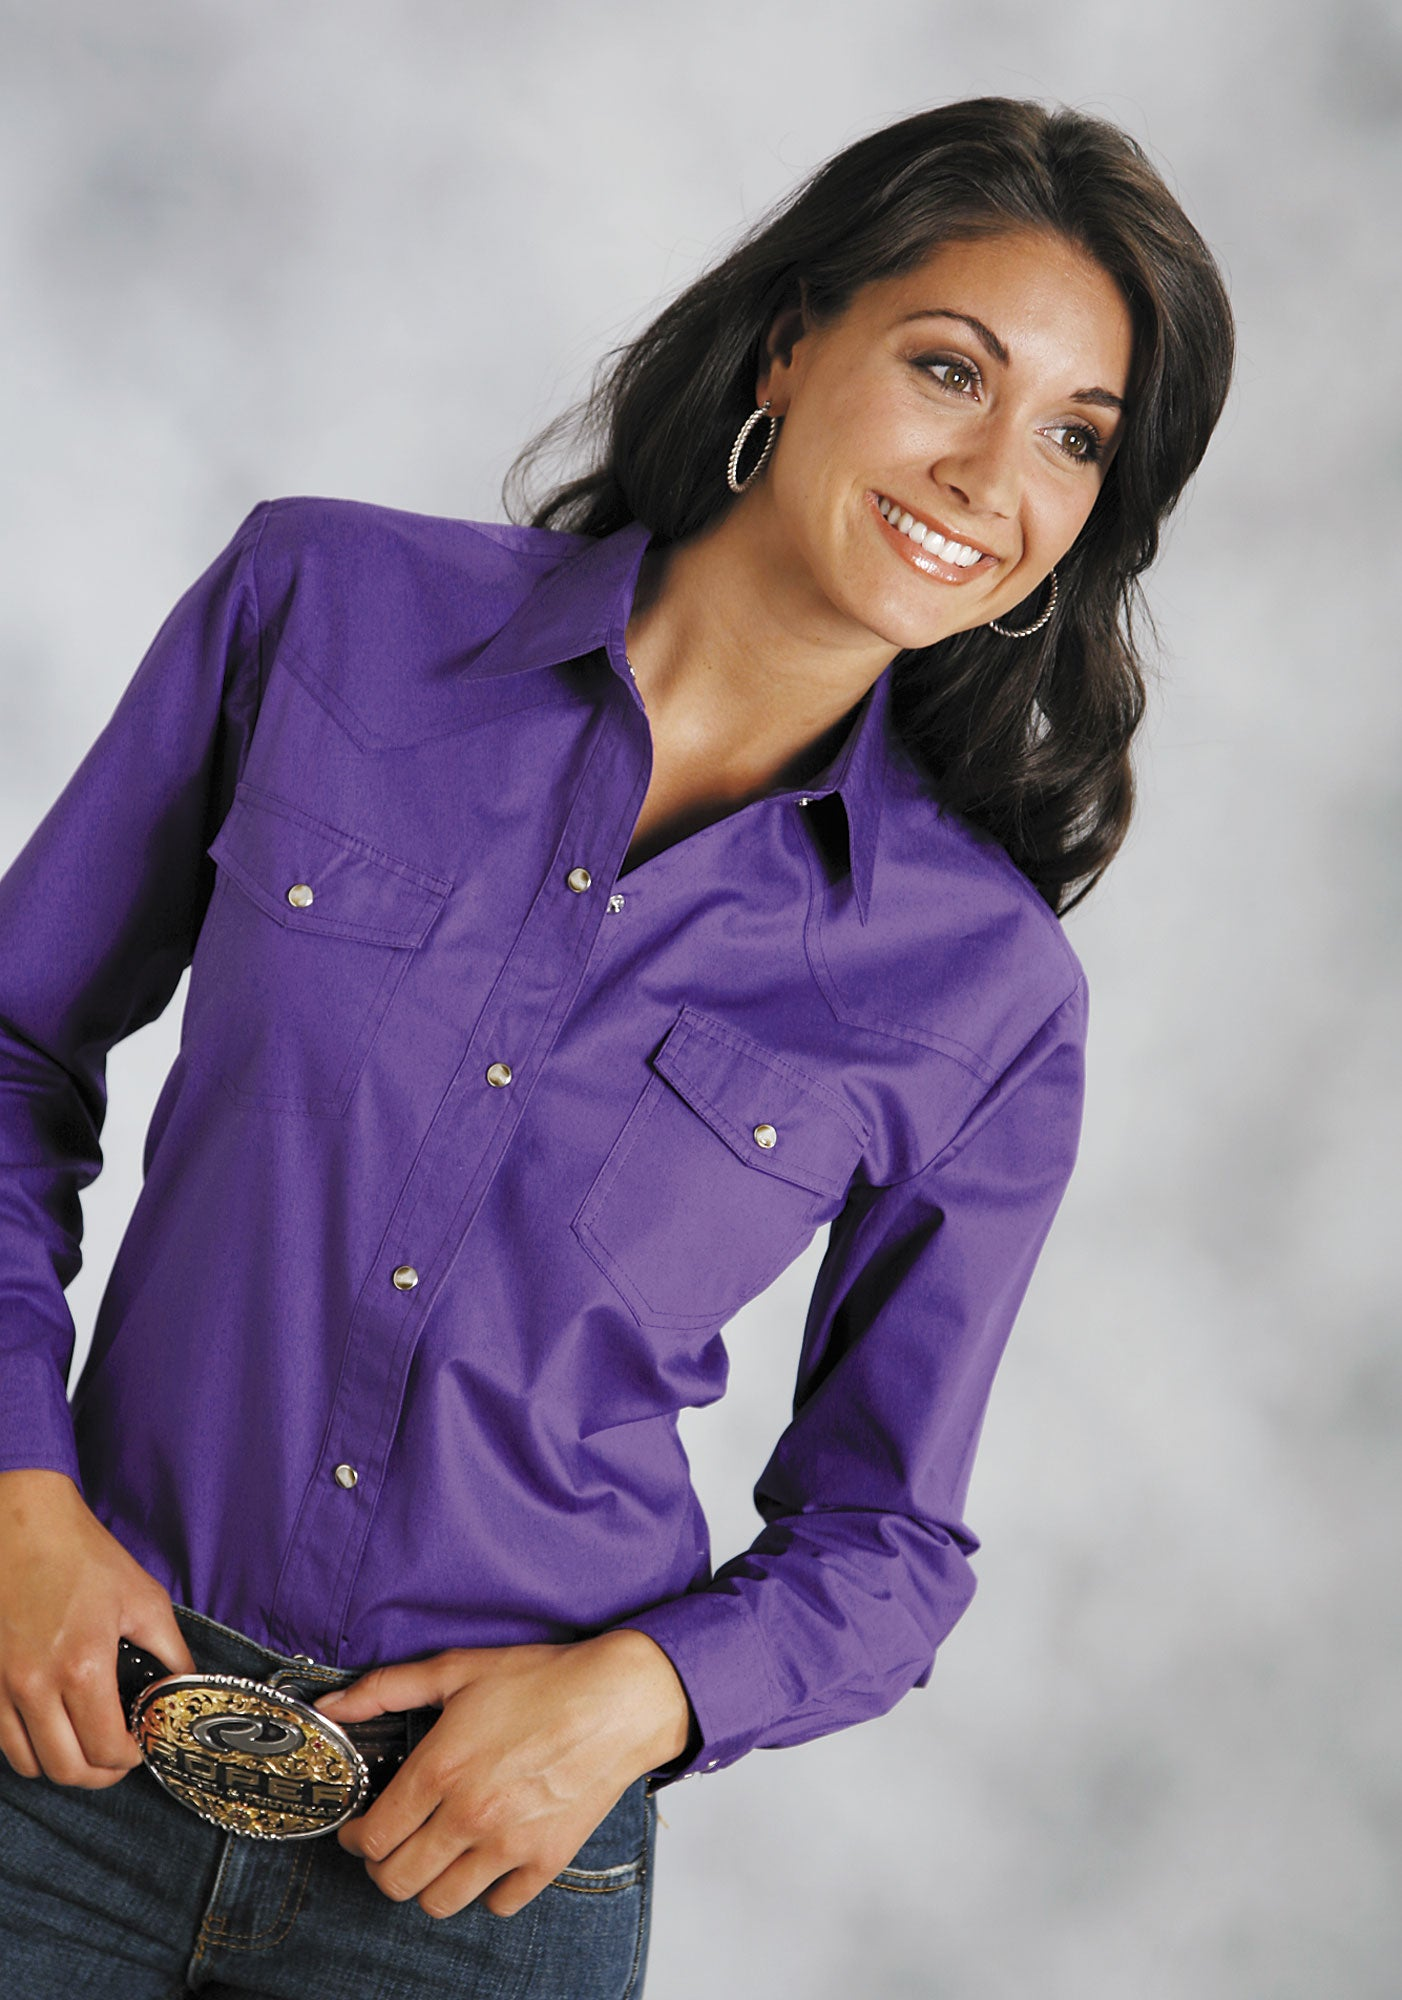 ROPER LADIES PURPLE SOLID POPLIN 1PT BACK YOKE VERGTD SNAP INSTOCK SOLID POPLIN LONG SLEEVE SHIRT